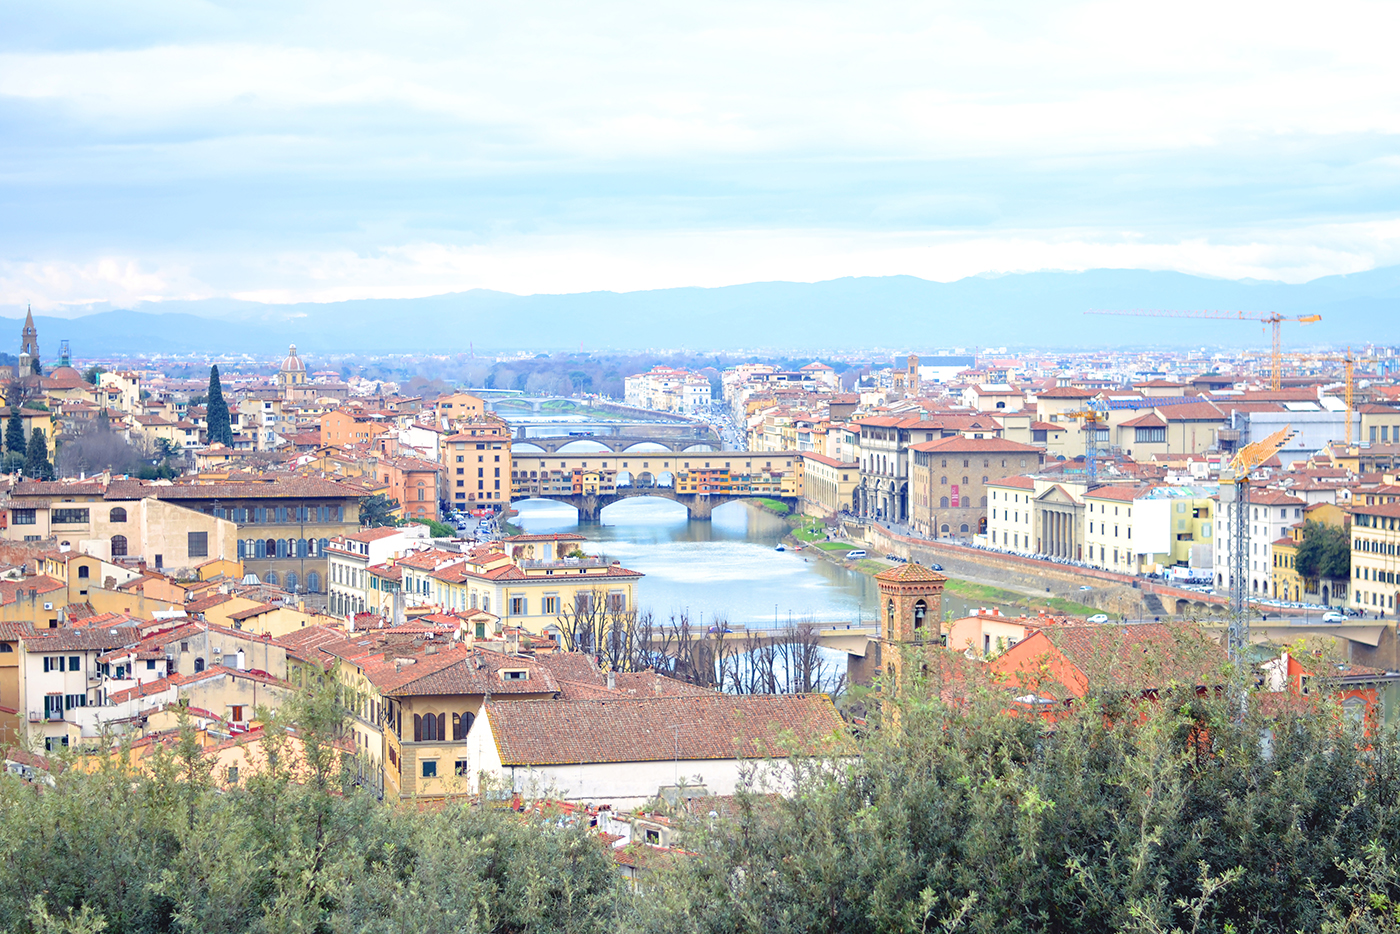 Florence Tuscany: 10 Fun (and Unique) Things To Do In Florence/Tuscany